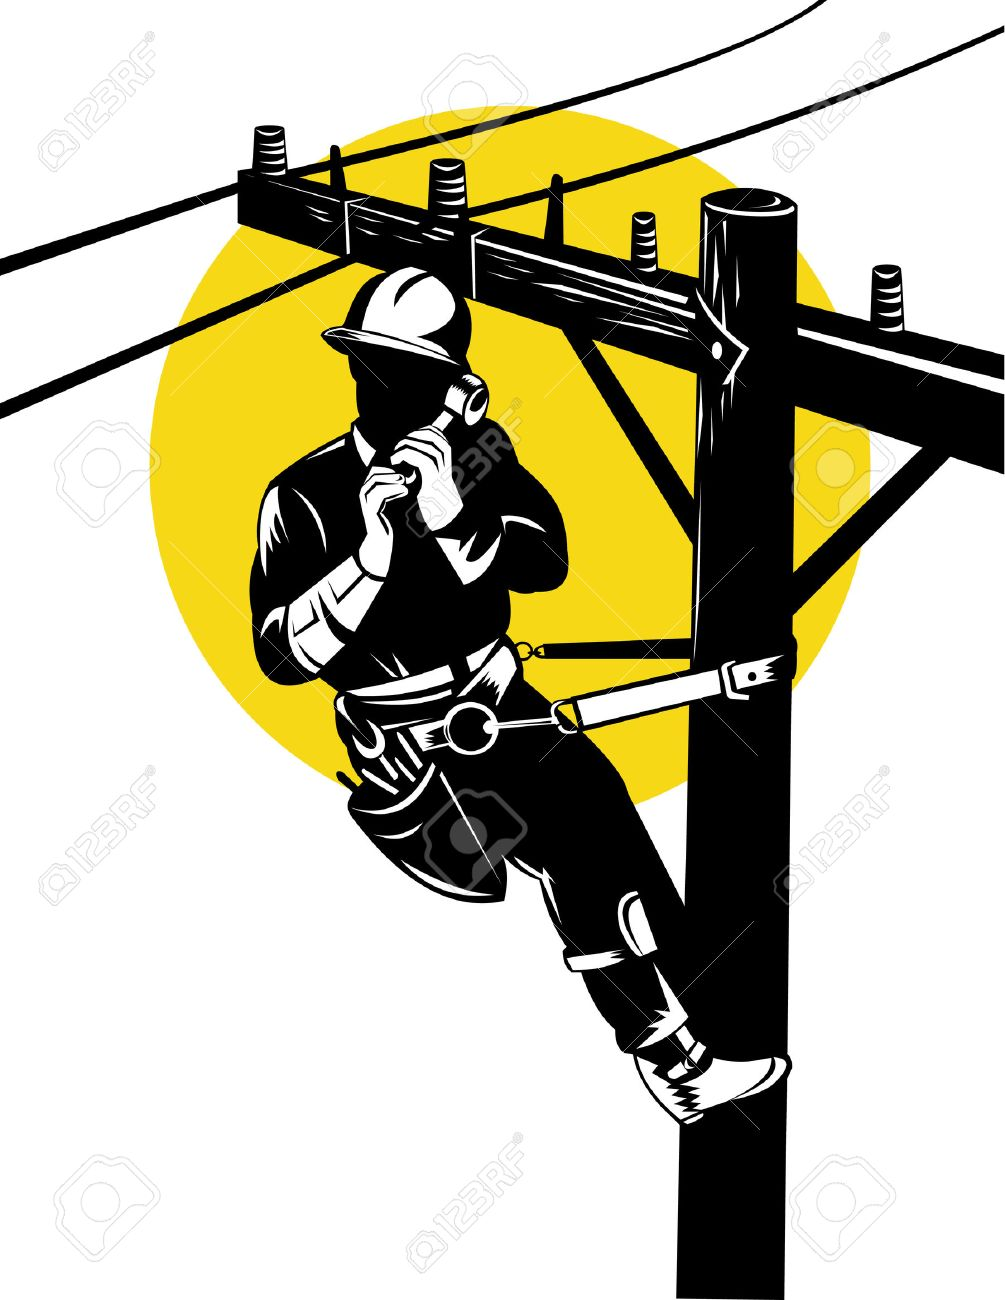 Power Lineman At Work Royalty Free Cliparts, Vectors, And Stock ...